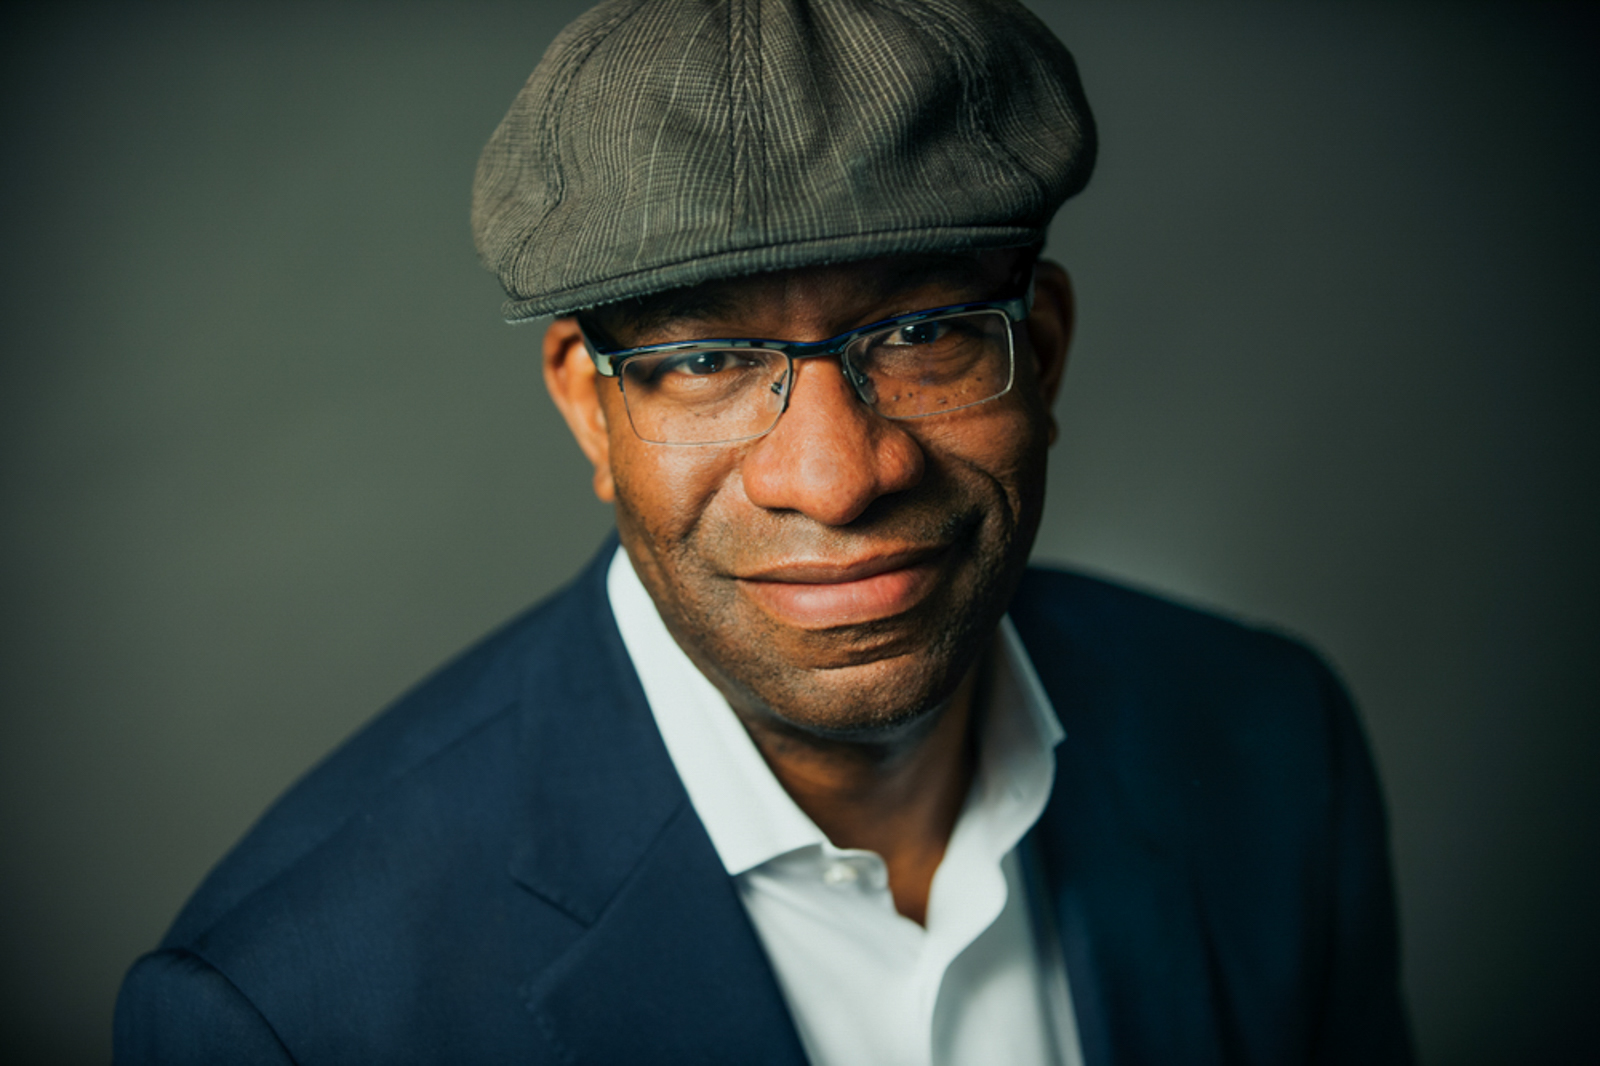 Portrait of a man wearing a hat and glasses, with a soft smile